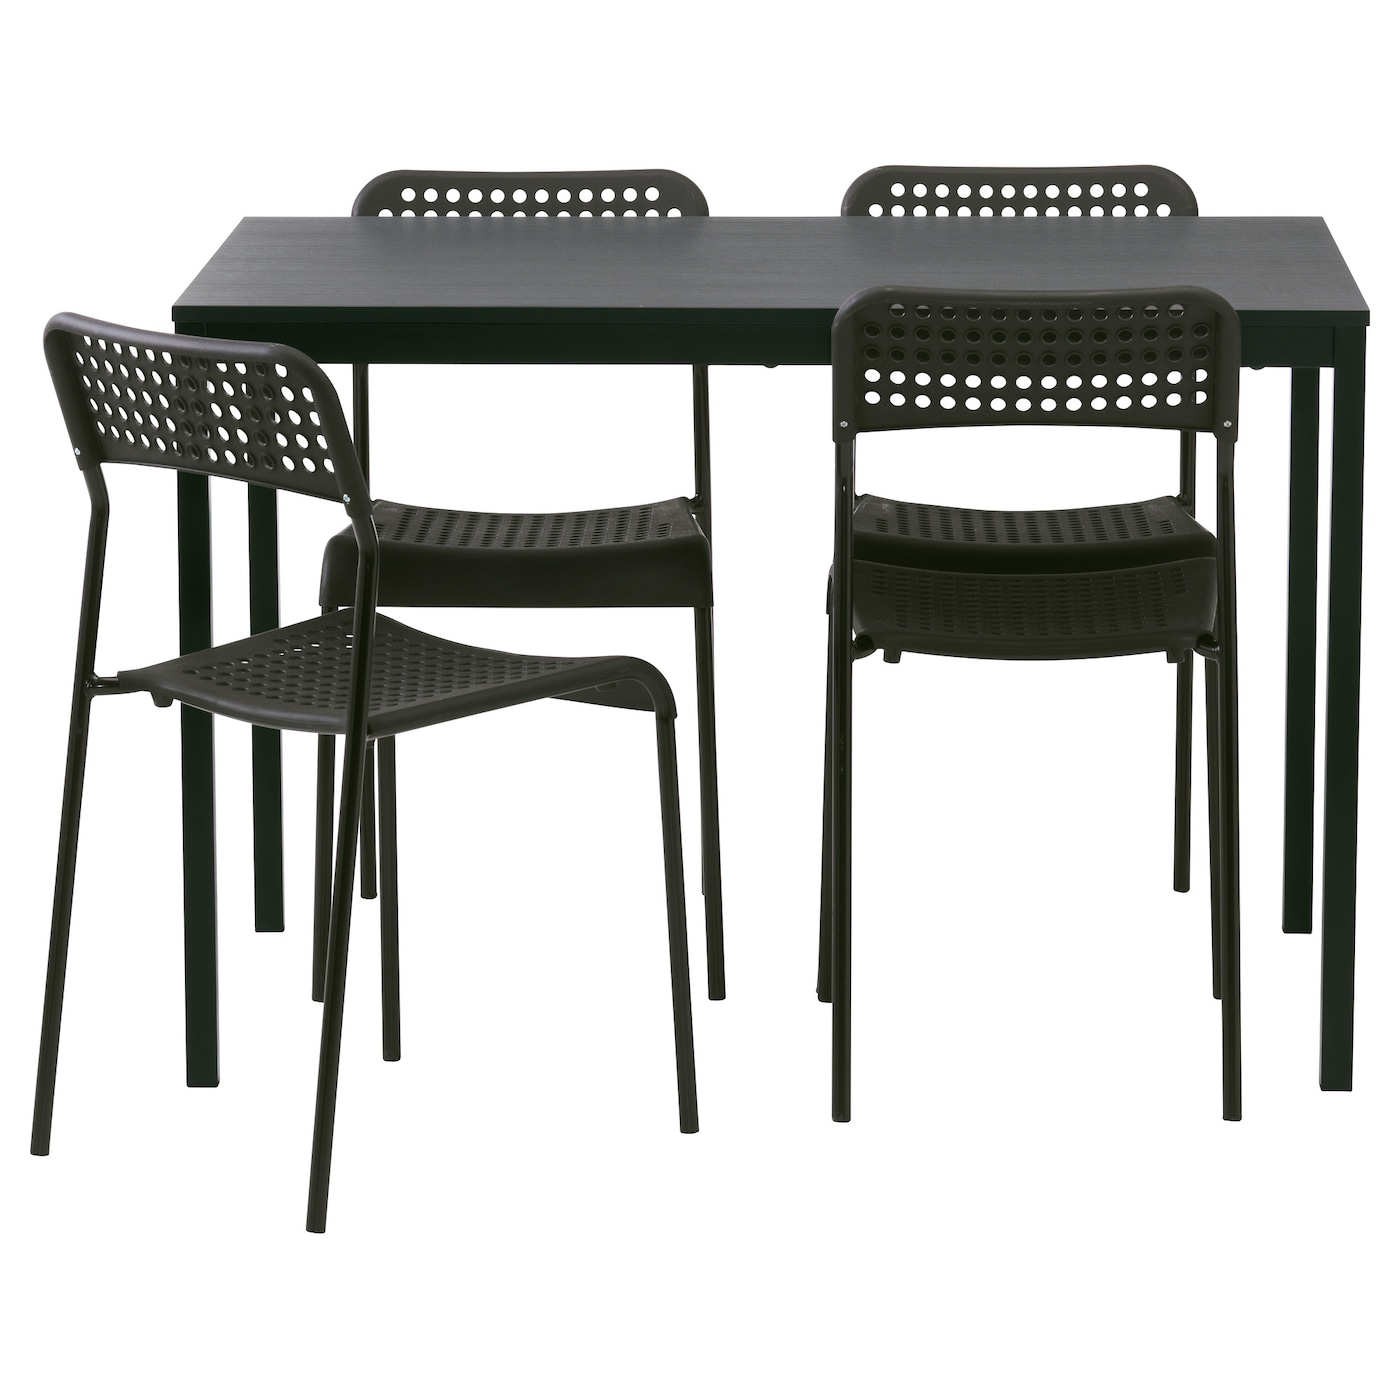 T rend adde table and 4 chairs black 110 cm ikea for Table de fusion ikea